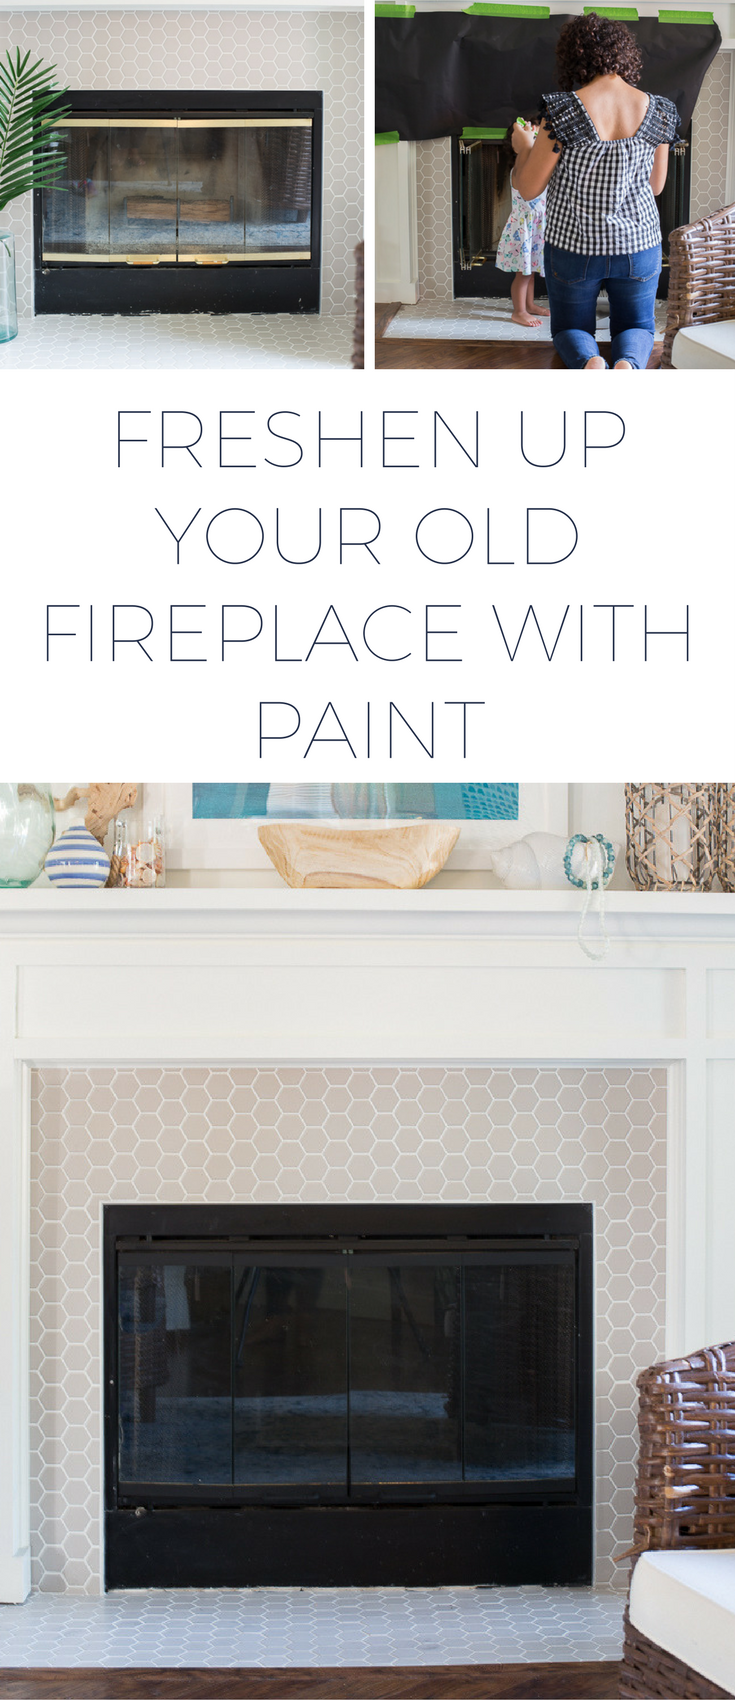 How to paint a fireplace with fireplacepaint to refresh a 90s era fireplace